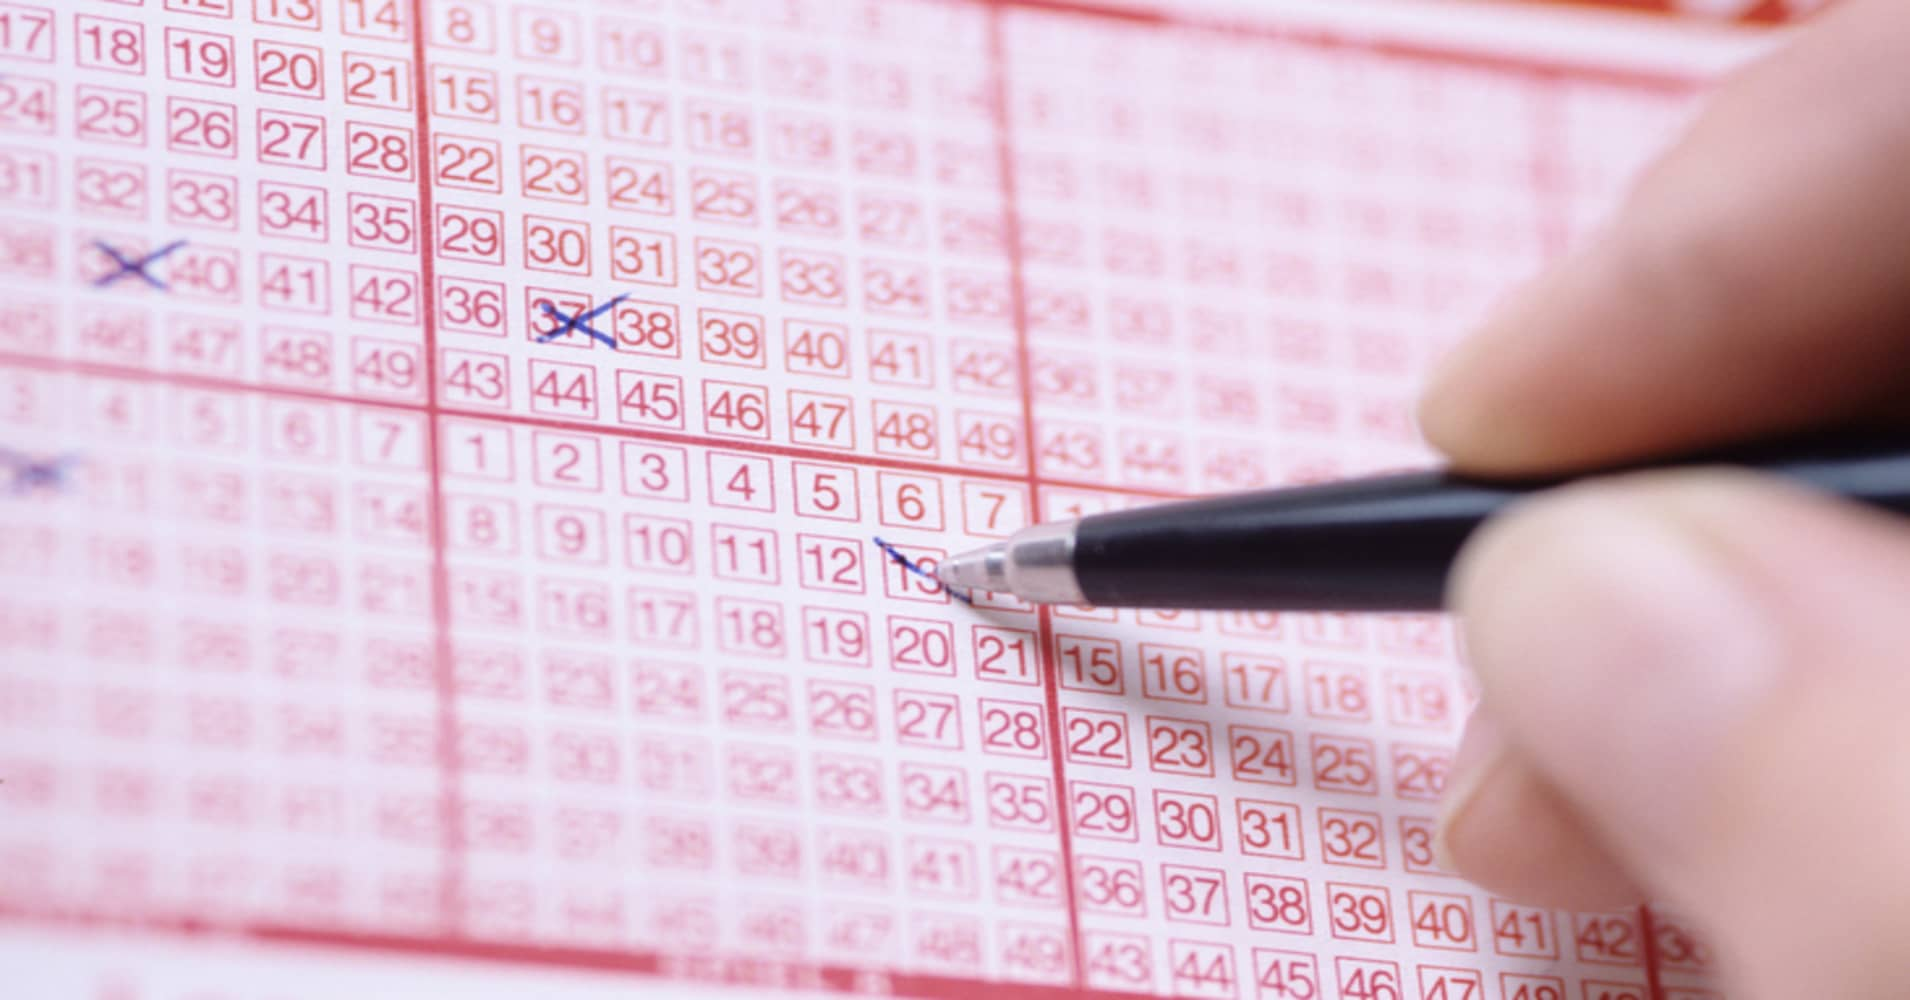 Here are the odds of you winning the lottery